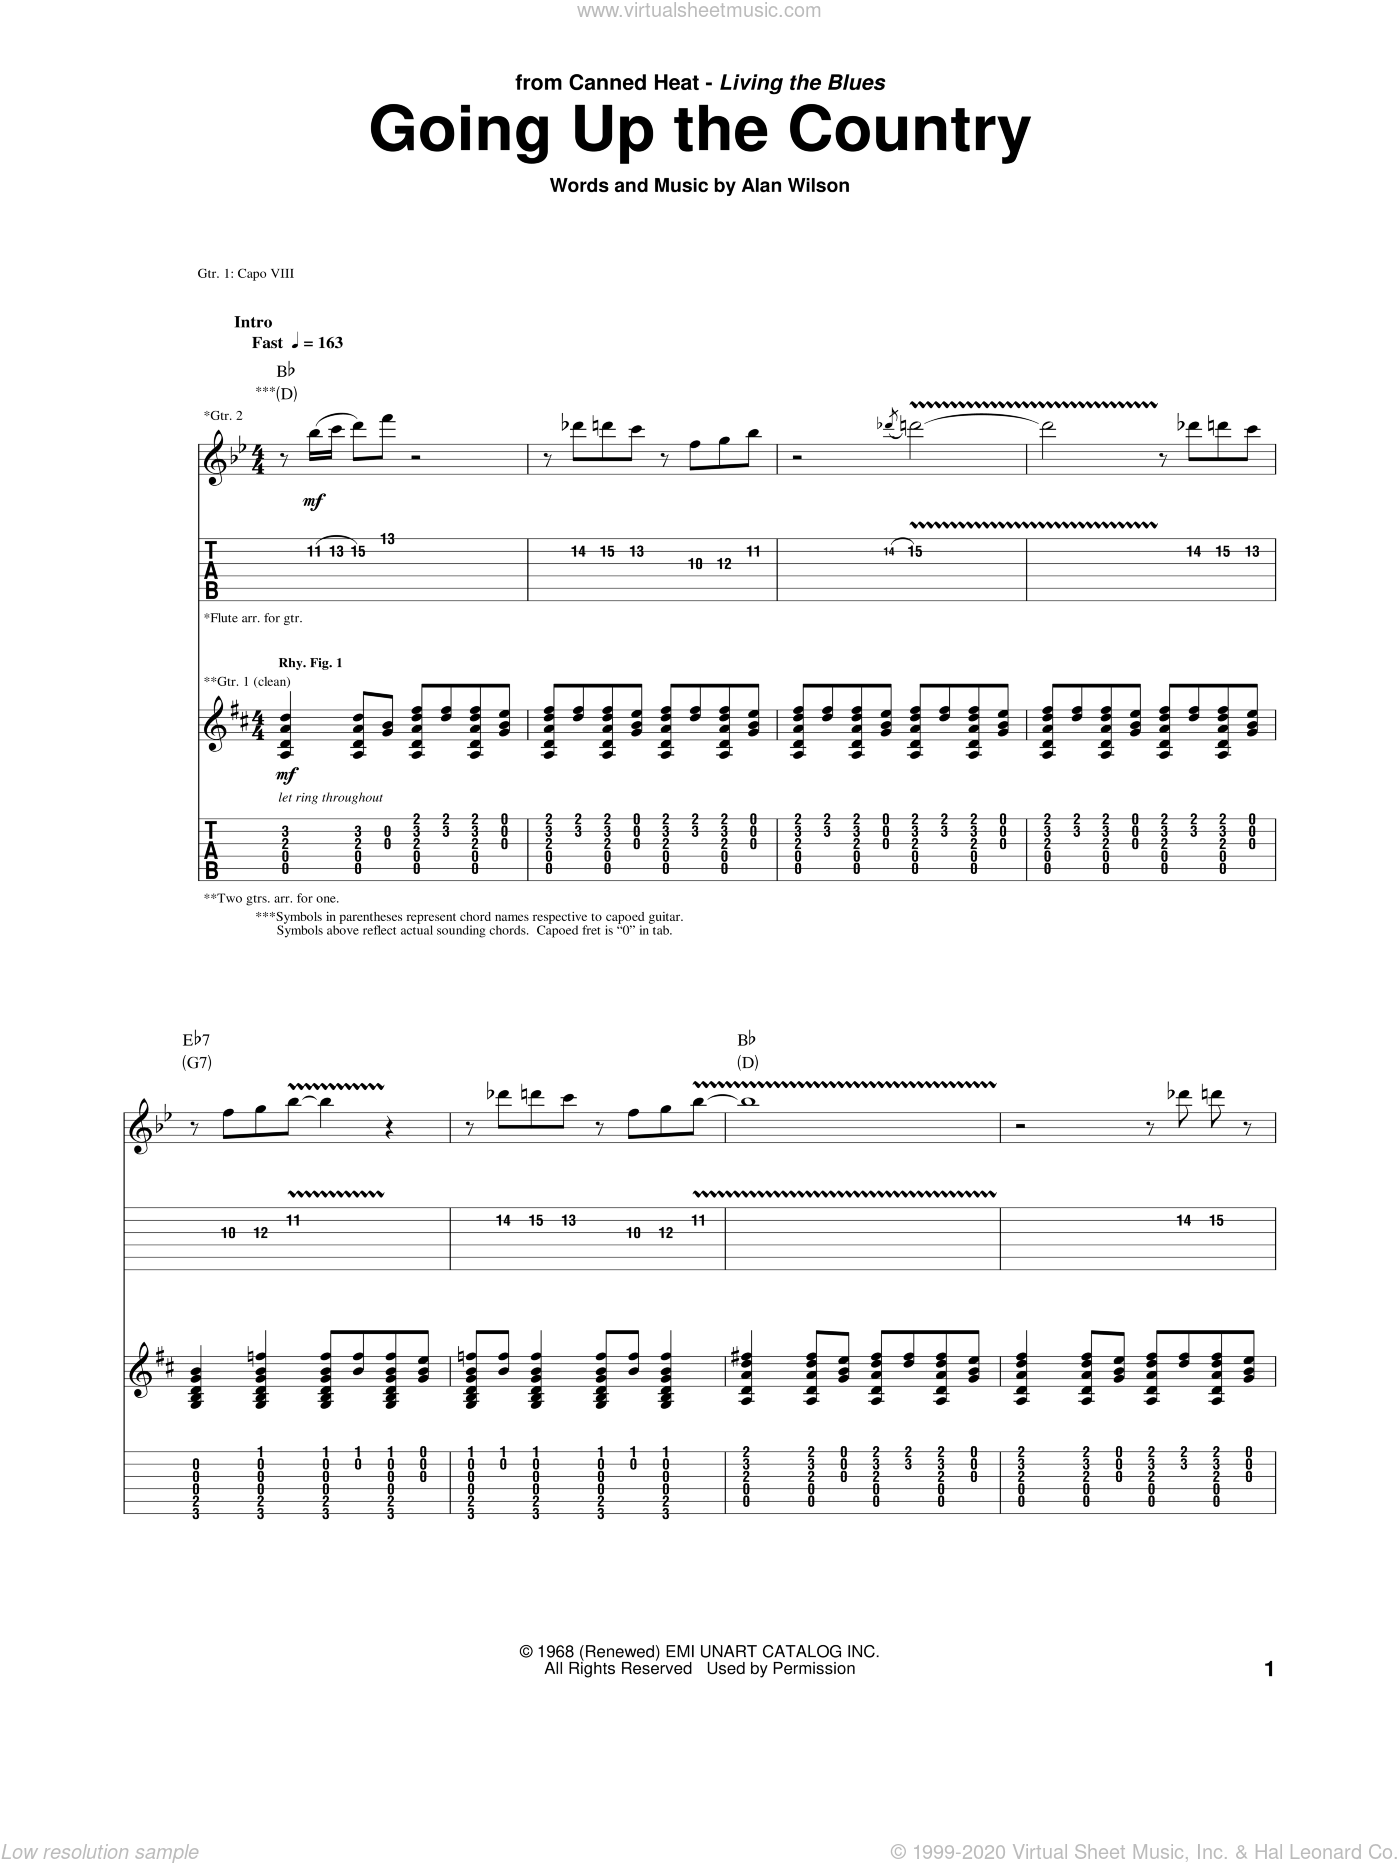 Going Up The Country sheet music for guitar (tablature) by Alan Wilson and Canned Heat. Score Image Preview.